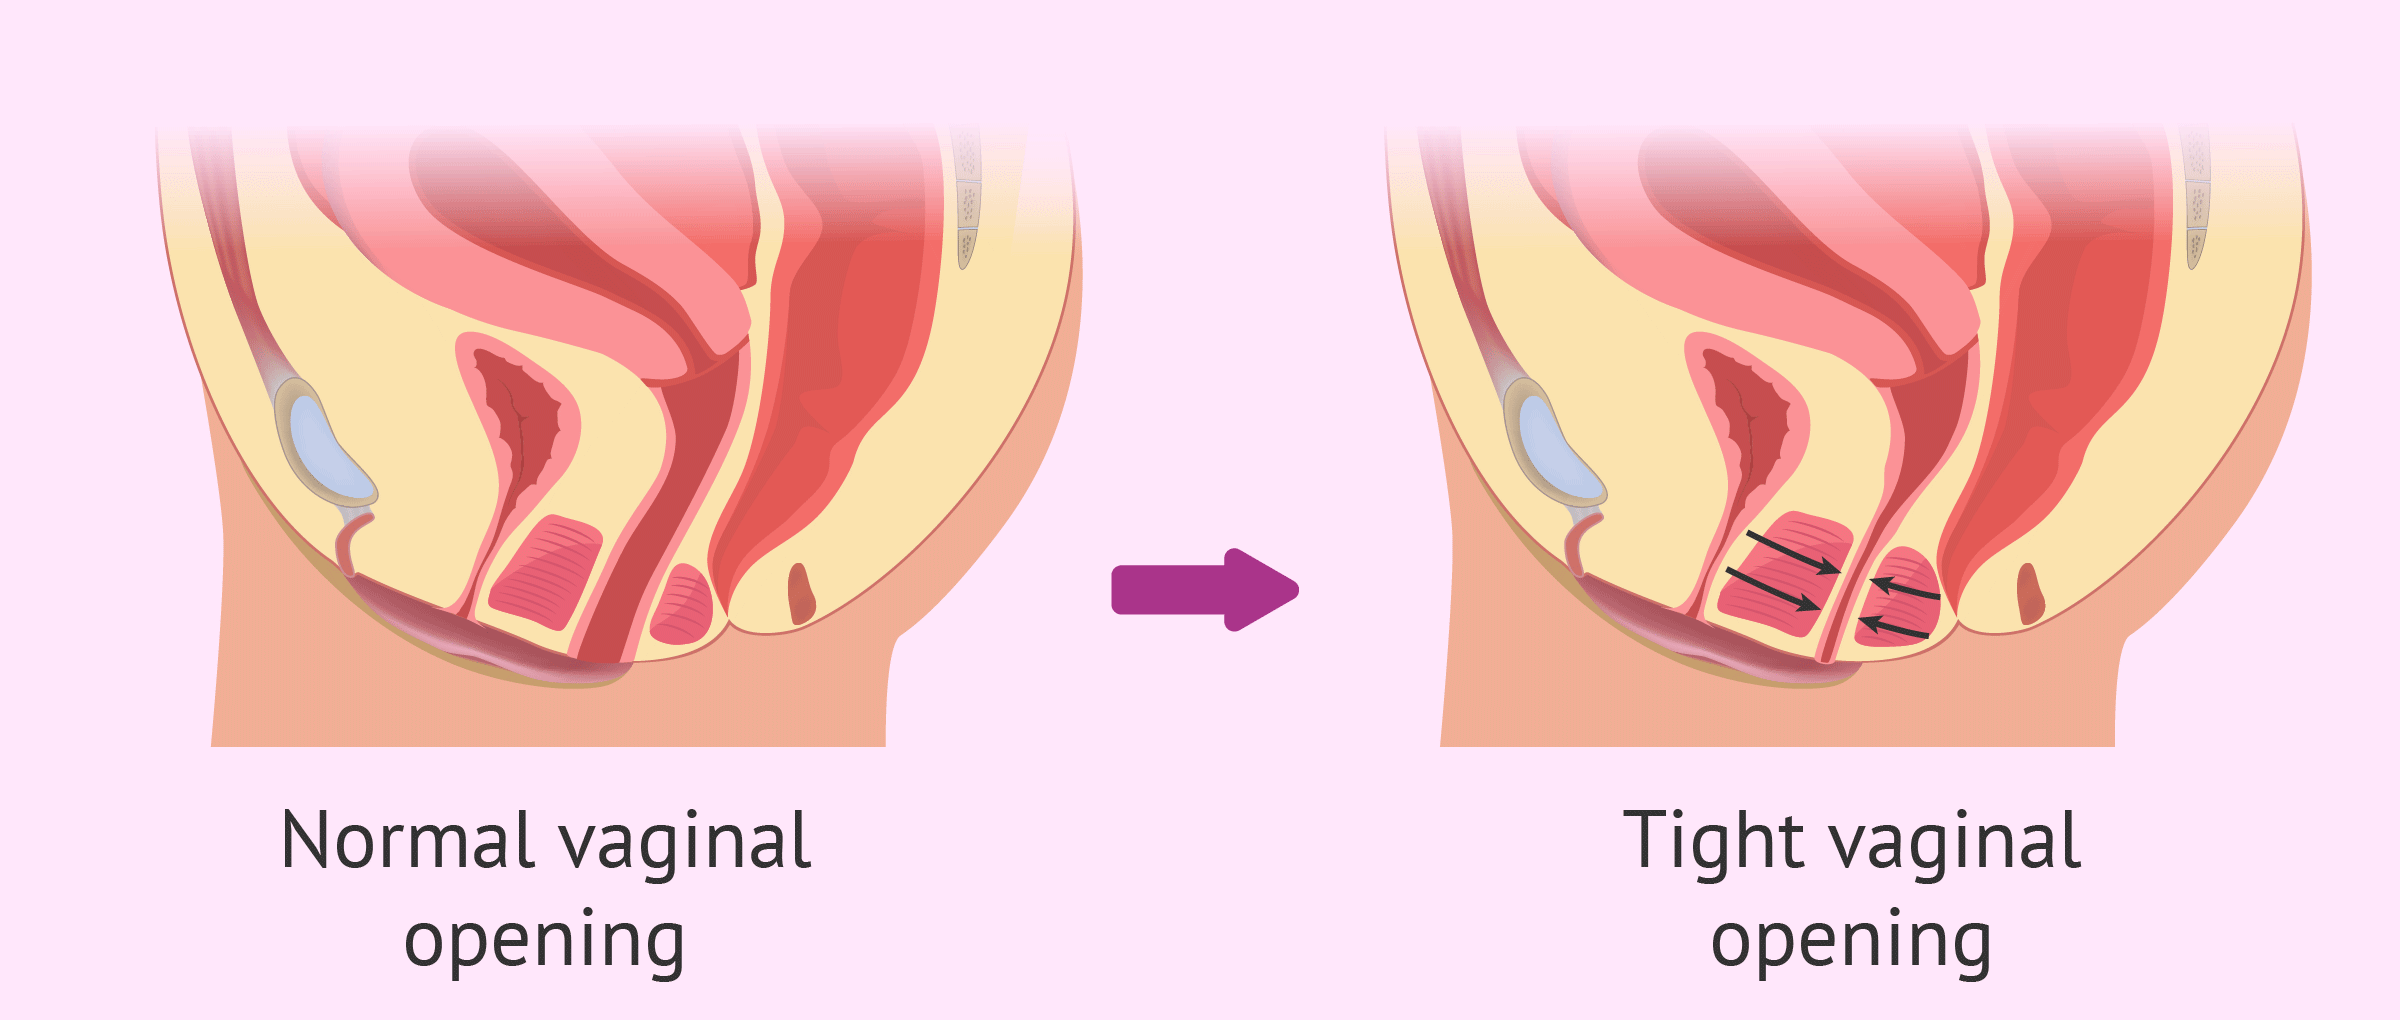 Normal vaginal opening vs. with vaginismus